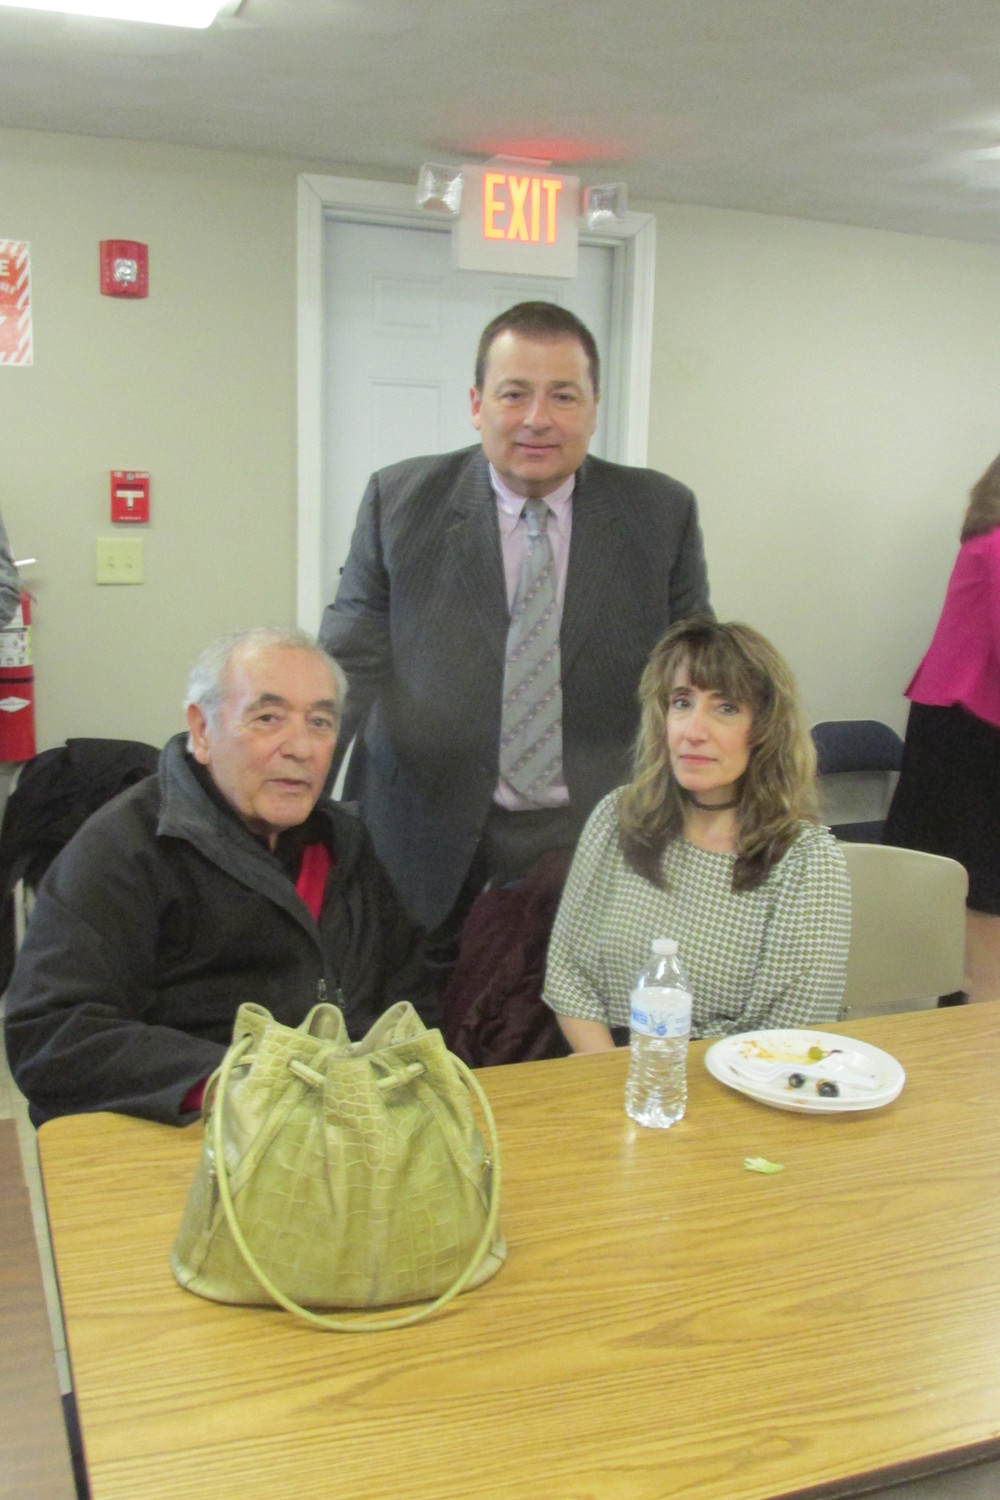 GRASSO'S GREETING: Johnston Municipal Court Associate Judge Jackie Grasso is joined by her father Joe Grasso and H. Joseph Shekarchi, House Majority Leader and a State Rep. from Warwick, at Tuesday's Networking Luncheon.